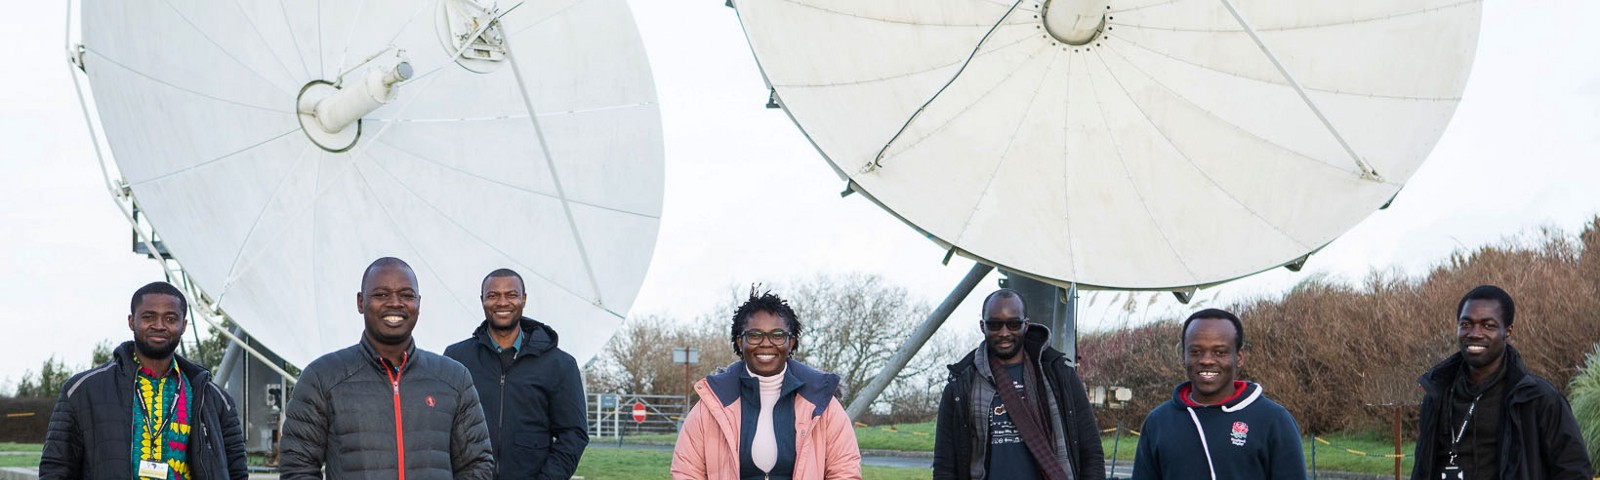 Seven students from the DARA training programme in a field with radio telescopes behind, at Goonhilly Station in Cornwall